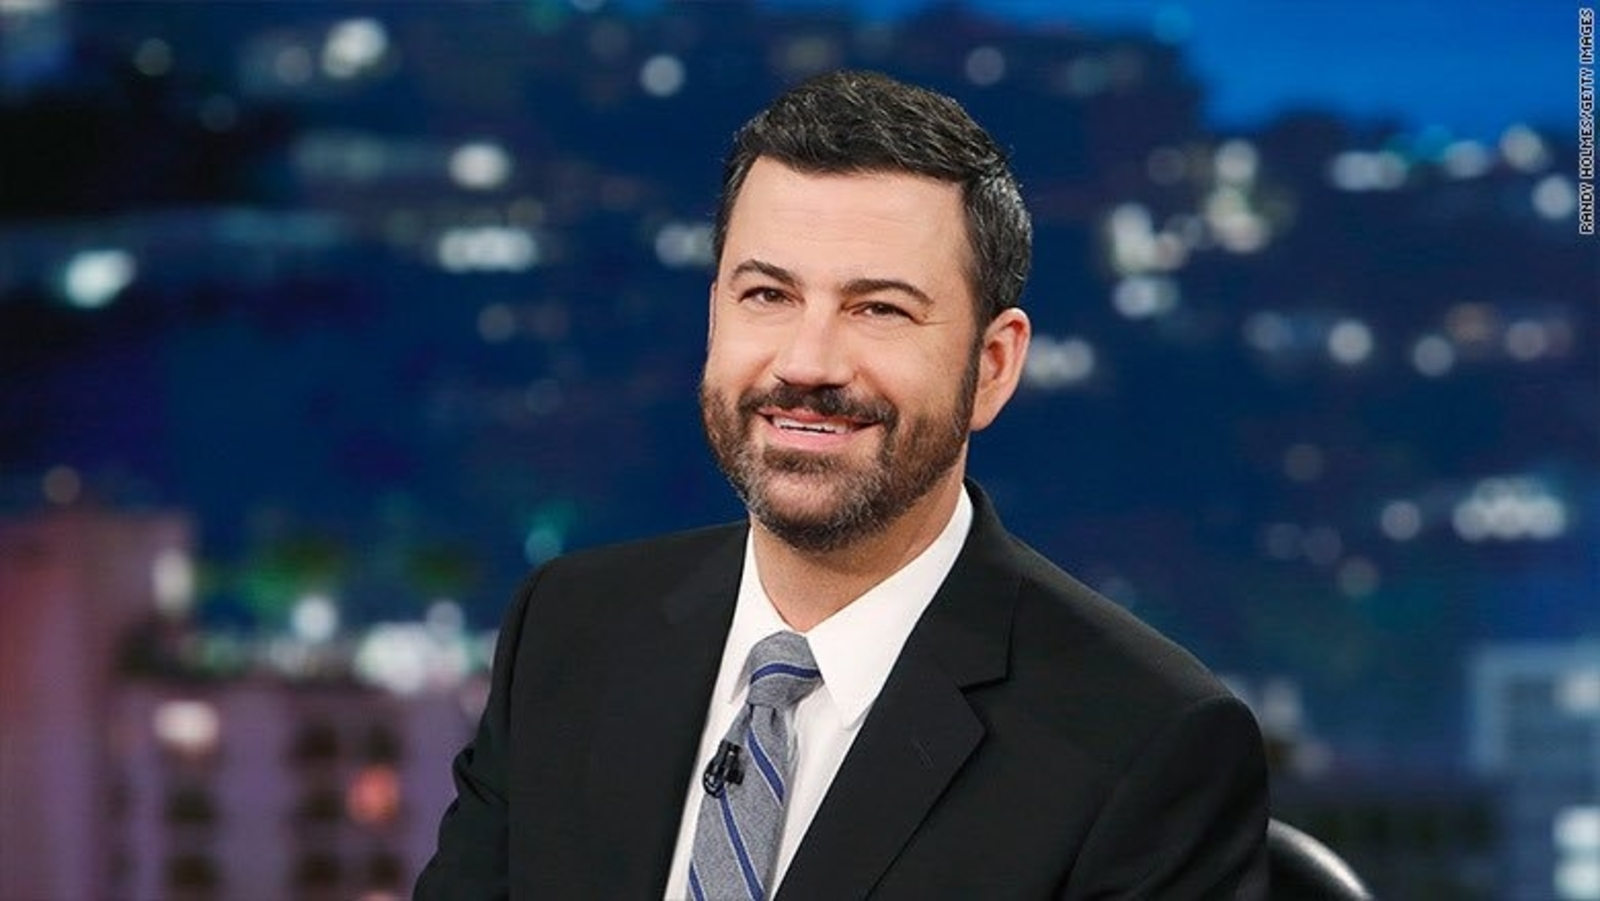 Photo of Jimmy Kimmel Cooking Every Week Because of Leonardo DiCaprio